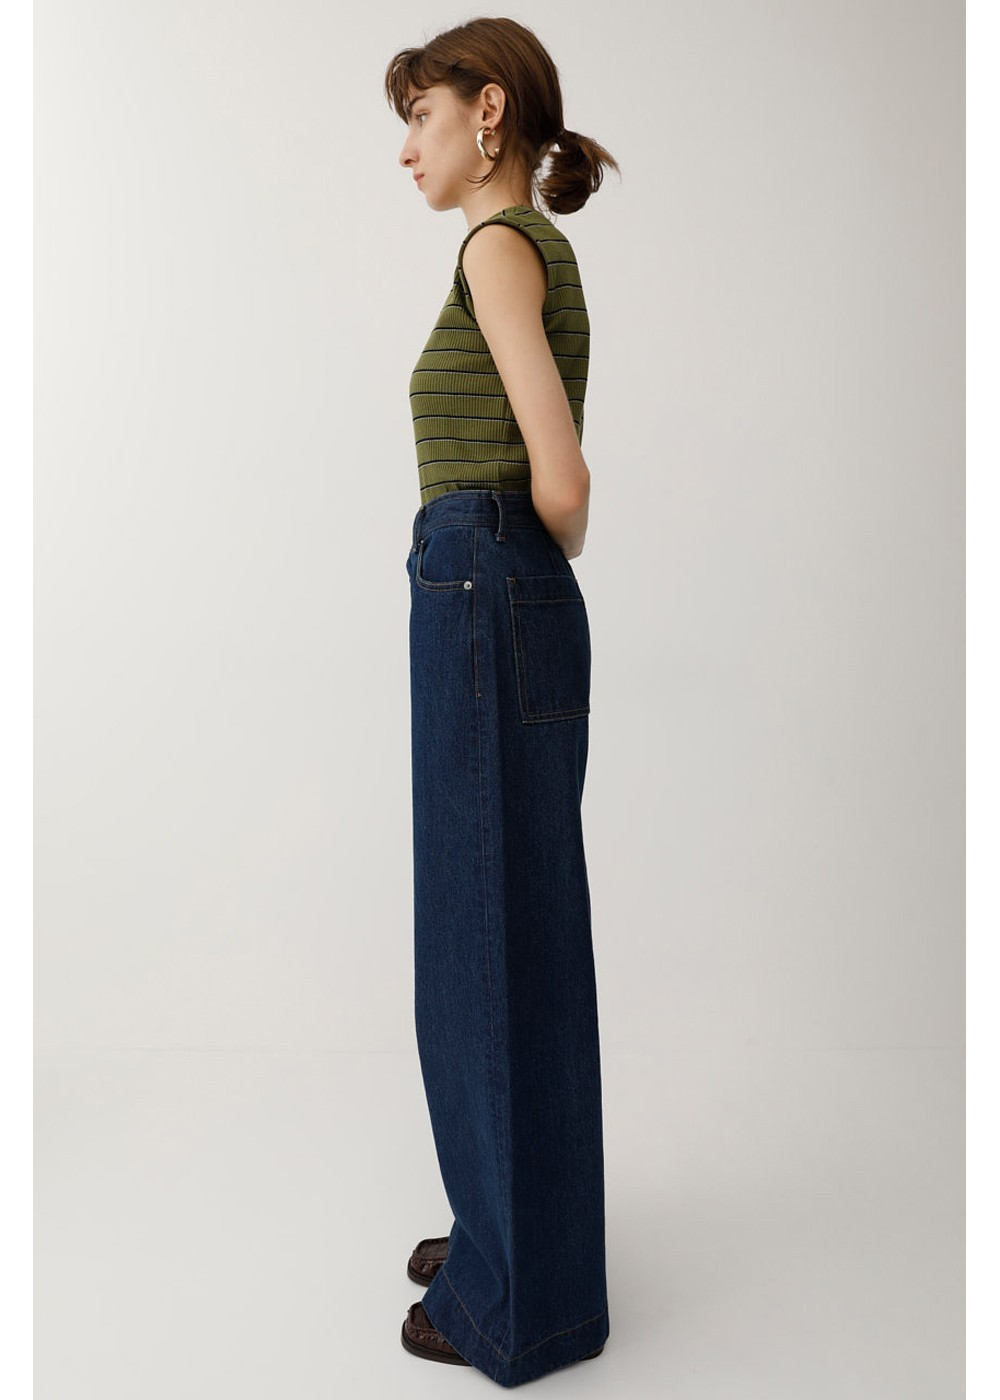 【最大60%OFF】RETRO BLU HIGH WAIST WIDE|BLU|デニムパンツ|MOUSSY